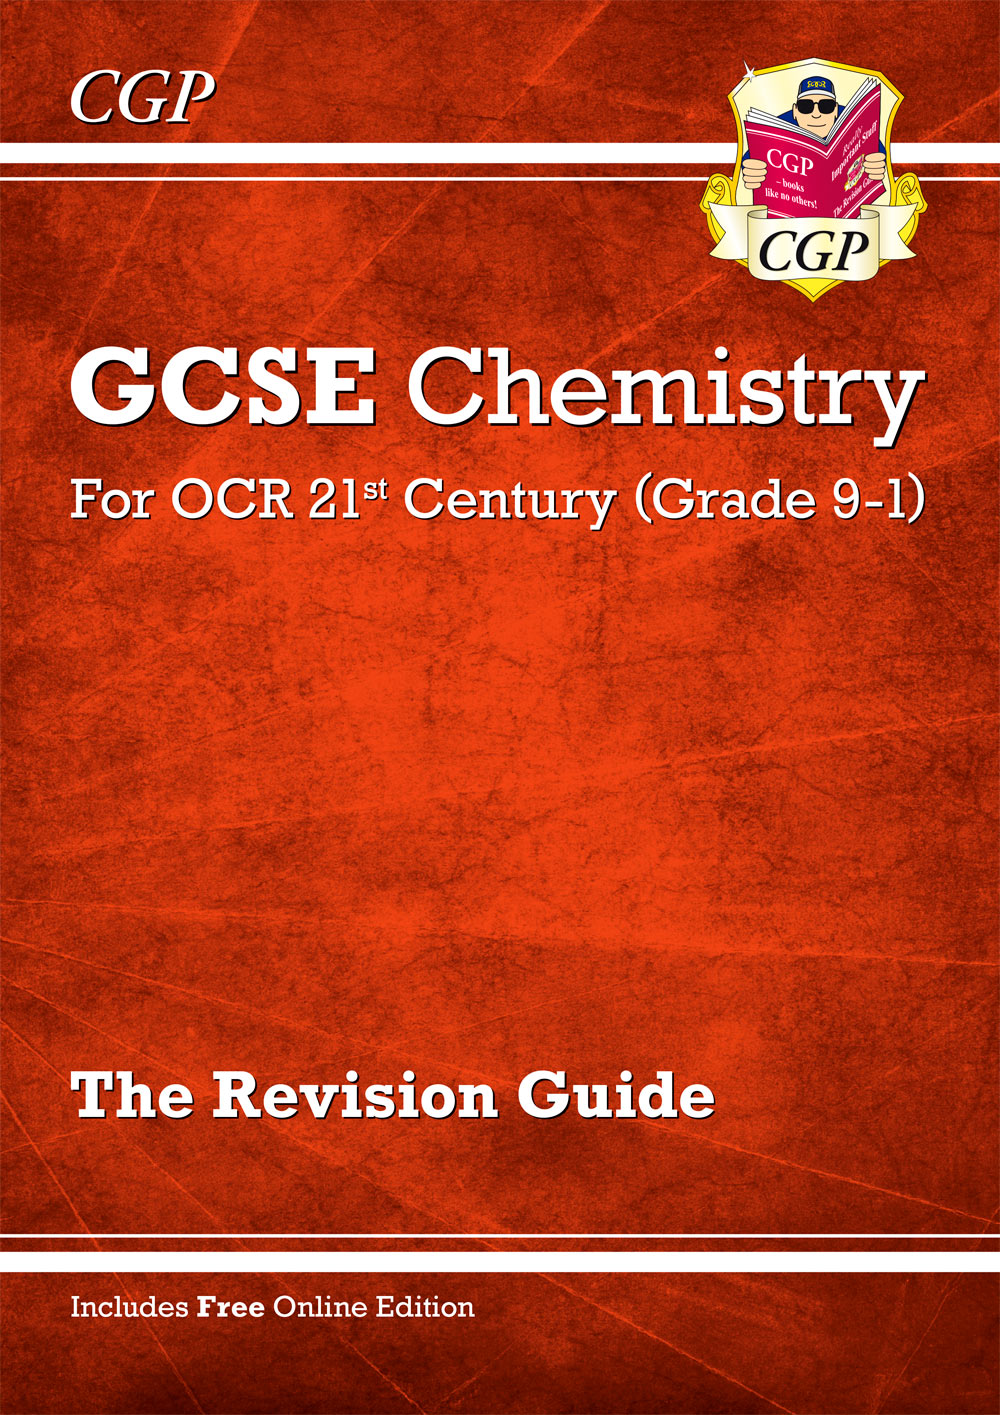 C2R45 - New Grade 9-1 GCSE Chemistry: OCR 21st Century Revision Guide with Online Edition